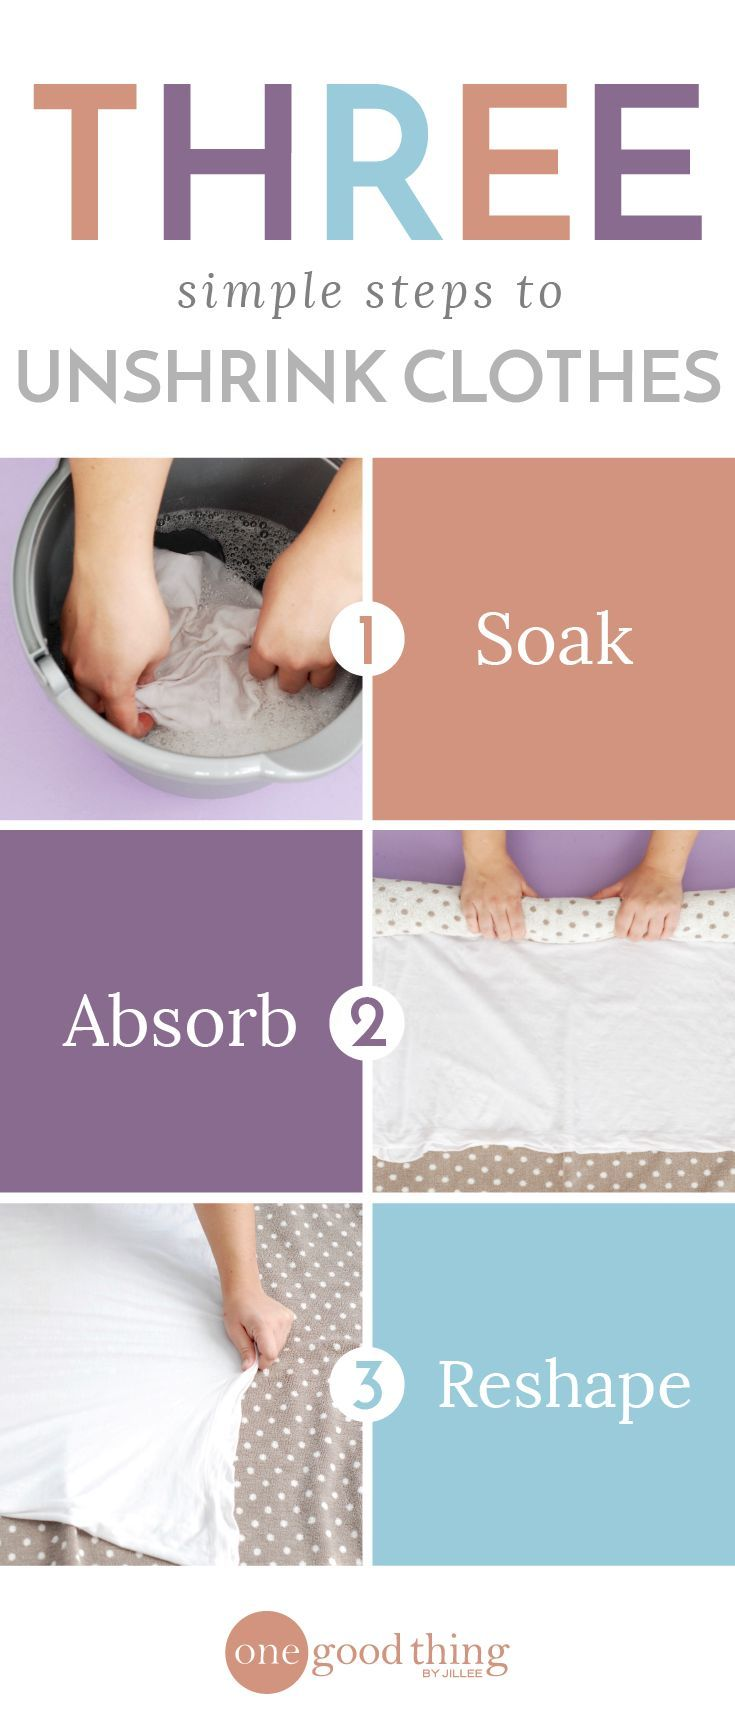 396 best cleaning tips images on pinterest cleaning hacks cleaning recipes and cleaning solutions - How to unshrink clothes three easy solutions ...